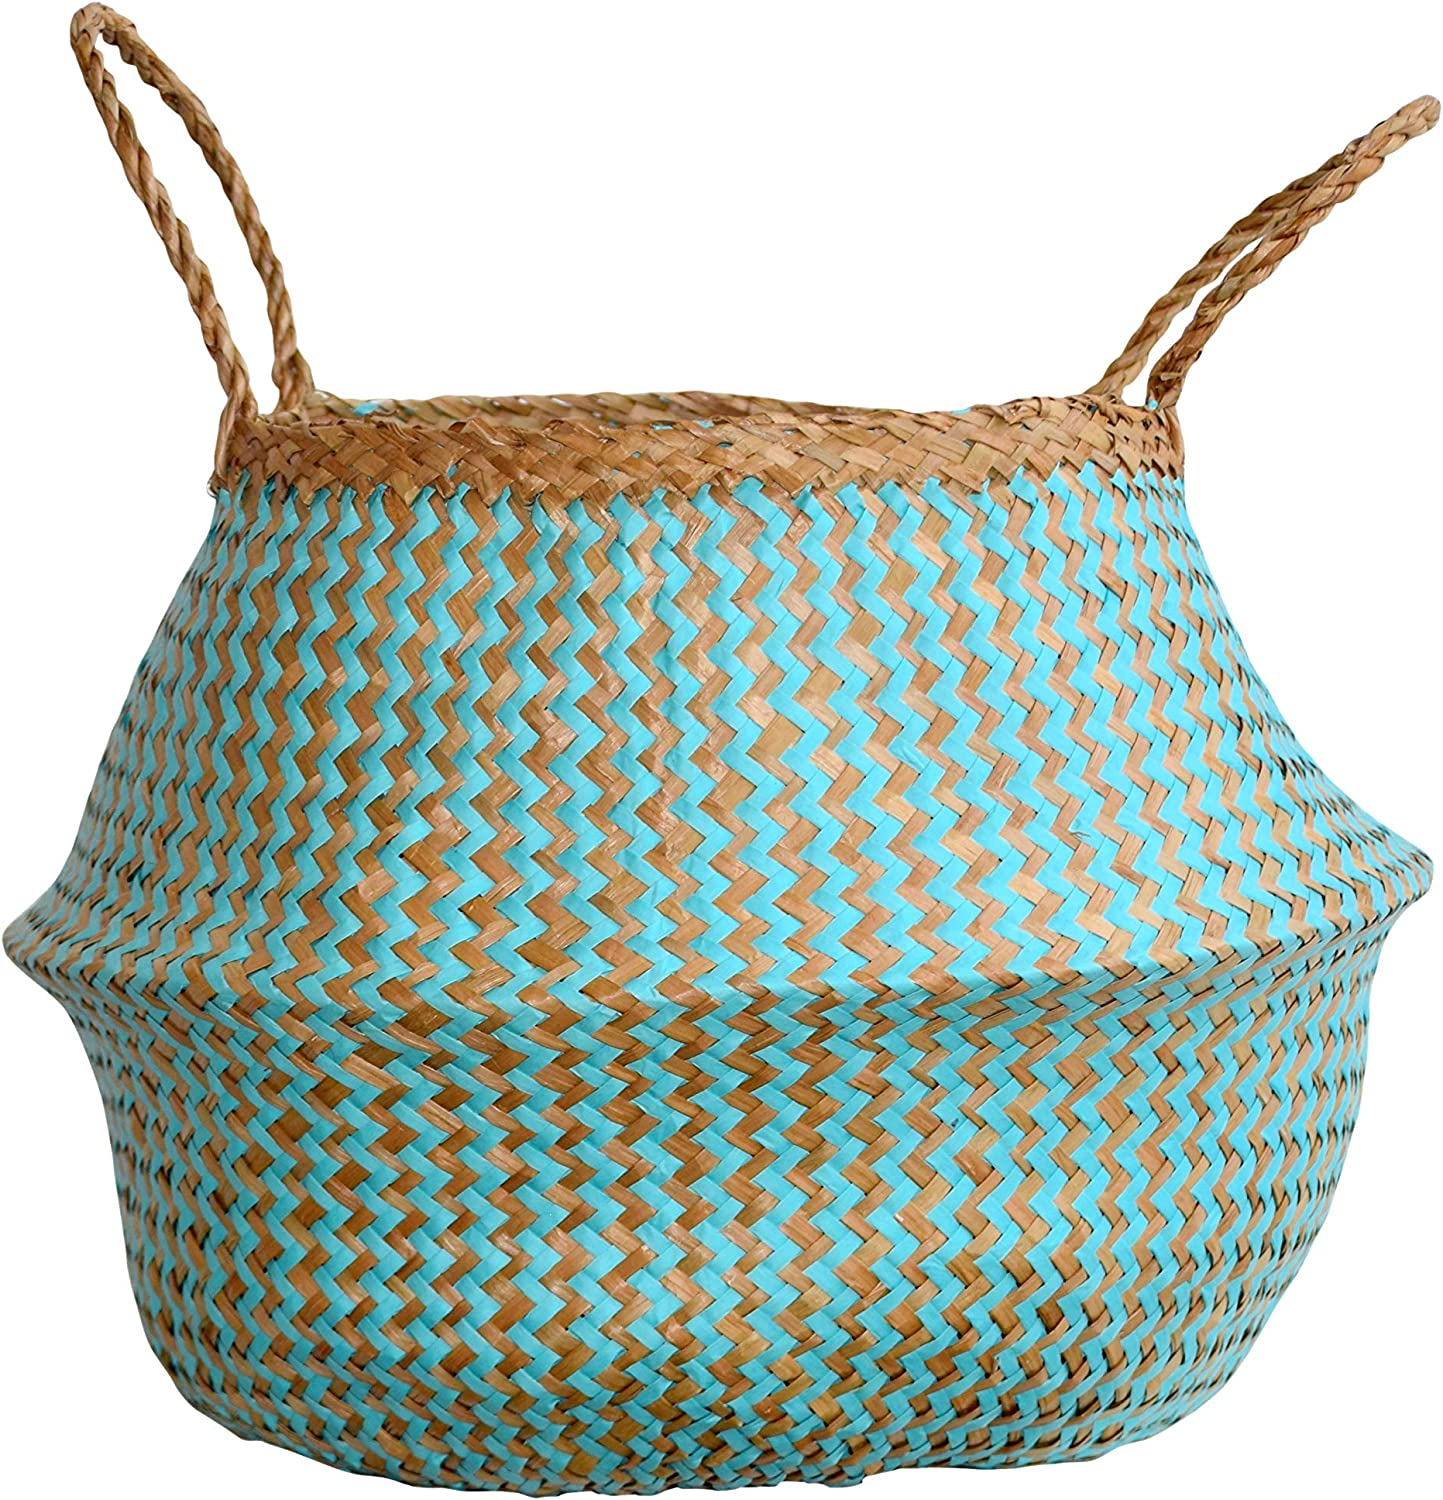 DUFMOD Large Natural and Plush Woven Seagrass Tote Belly Basket for Storage, Laundry, Picnic, Plant Pot Cover, and Beach Bag (Plush Zigzag Chevron Seagrass Aquamarine, Large)